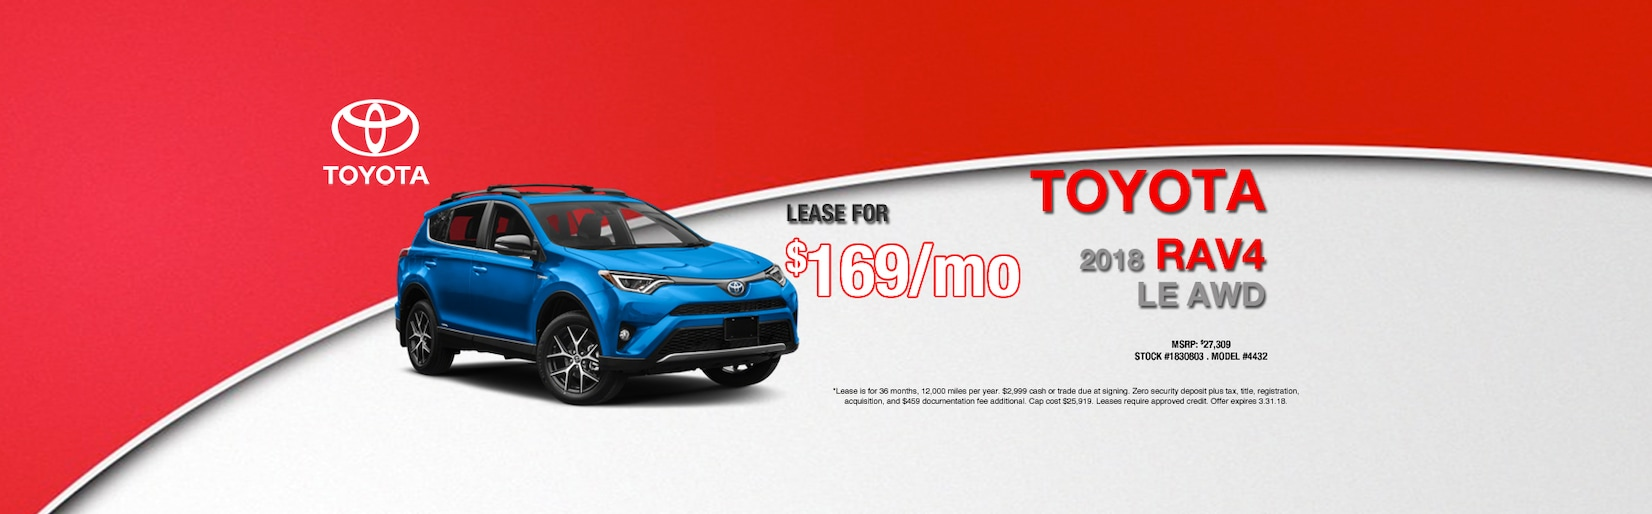 New Toyota Used Car Dealership At Herb Chambers Toyota Of Boston - Acura dealer in framingham ma